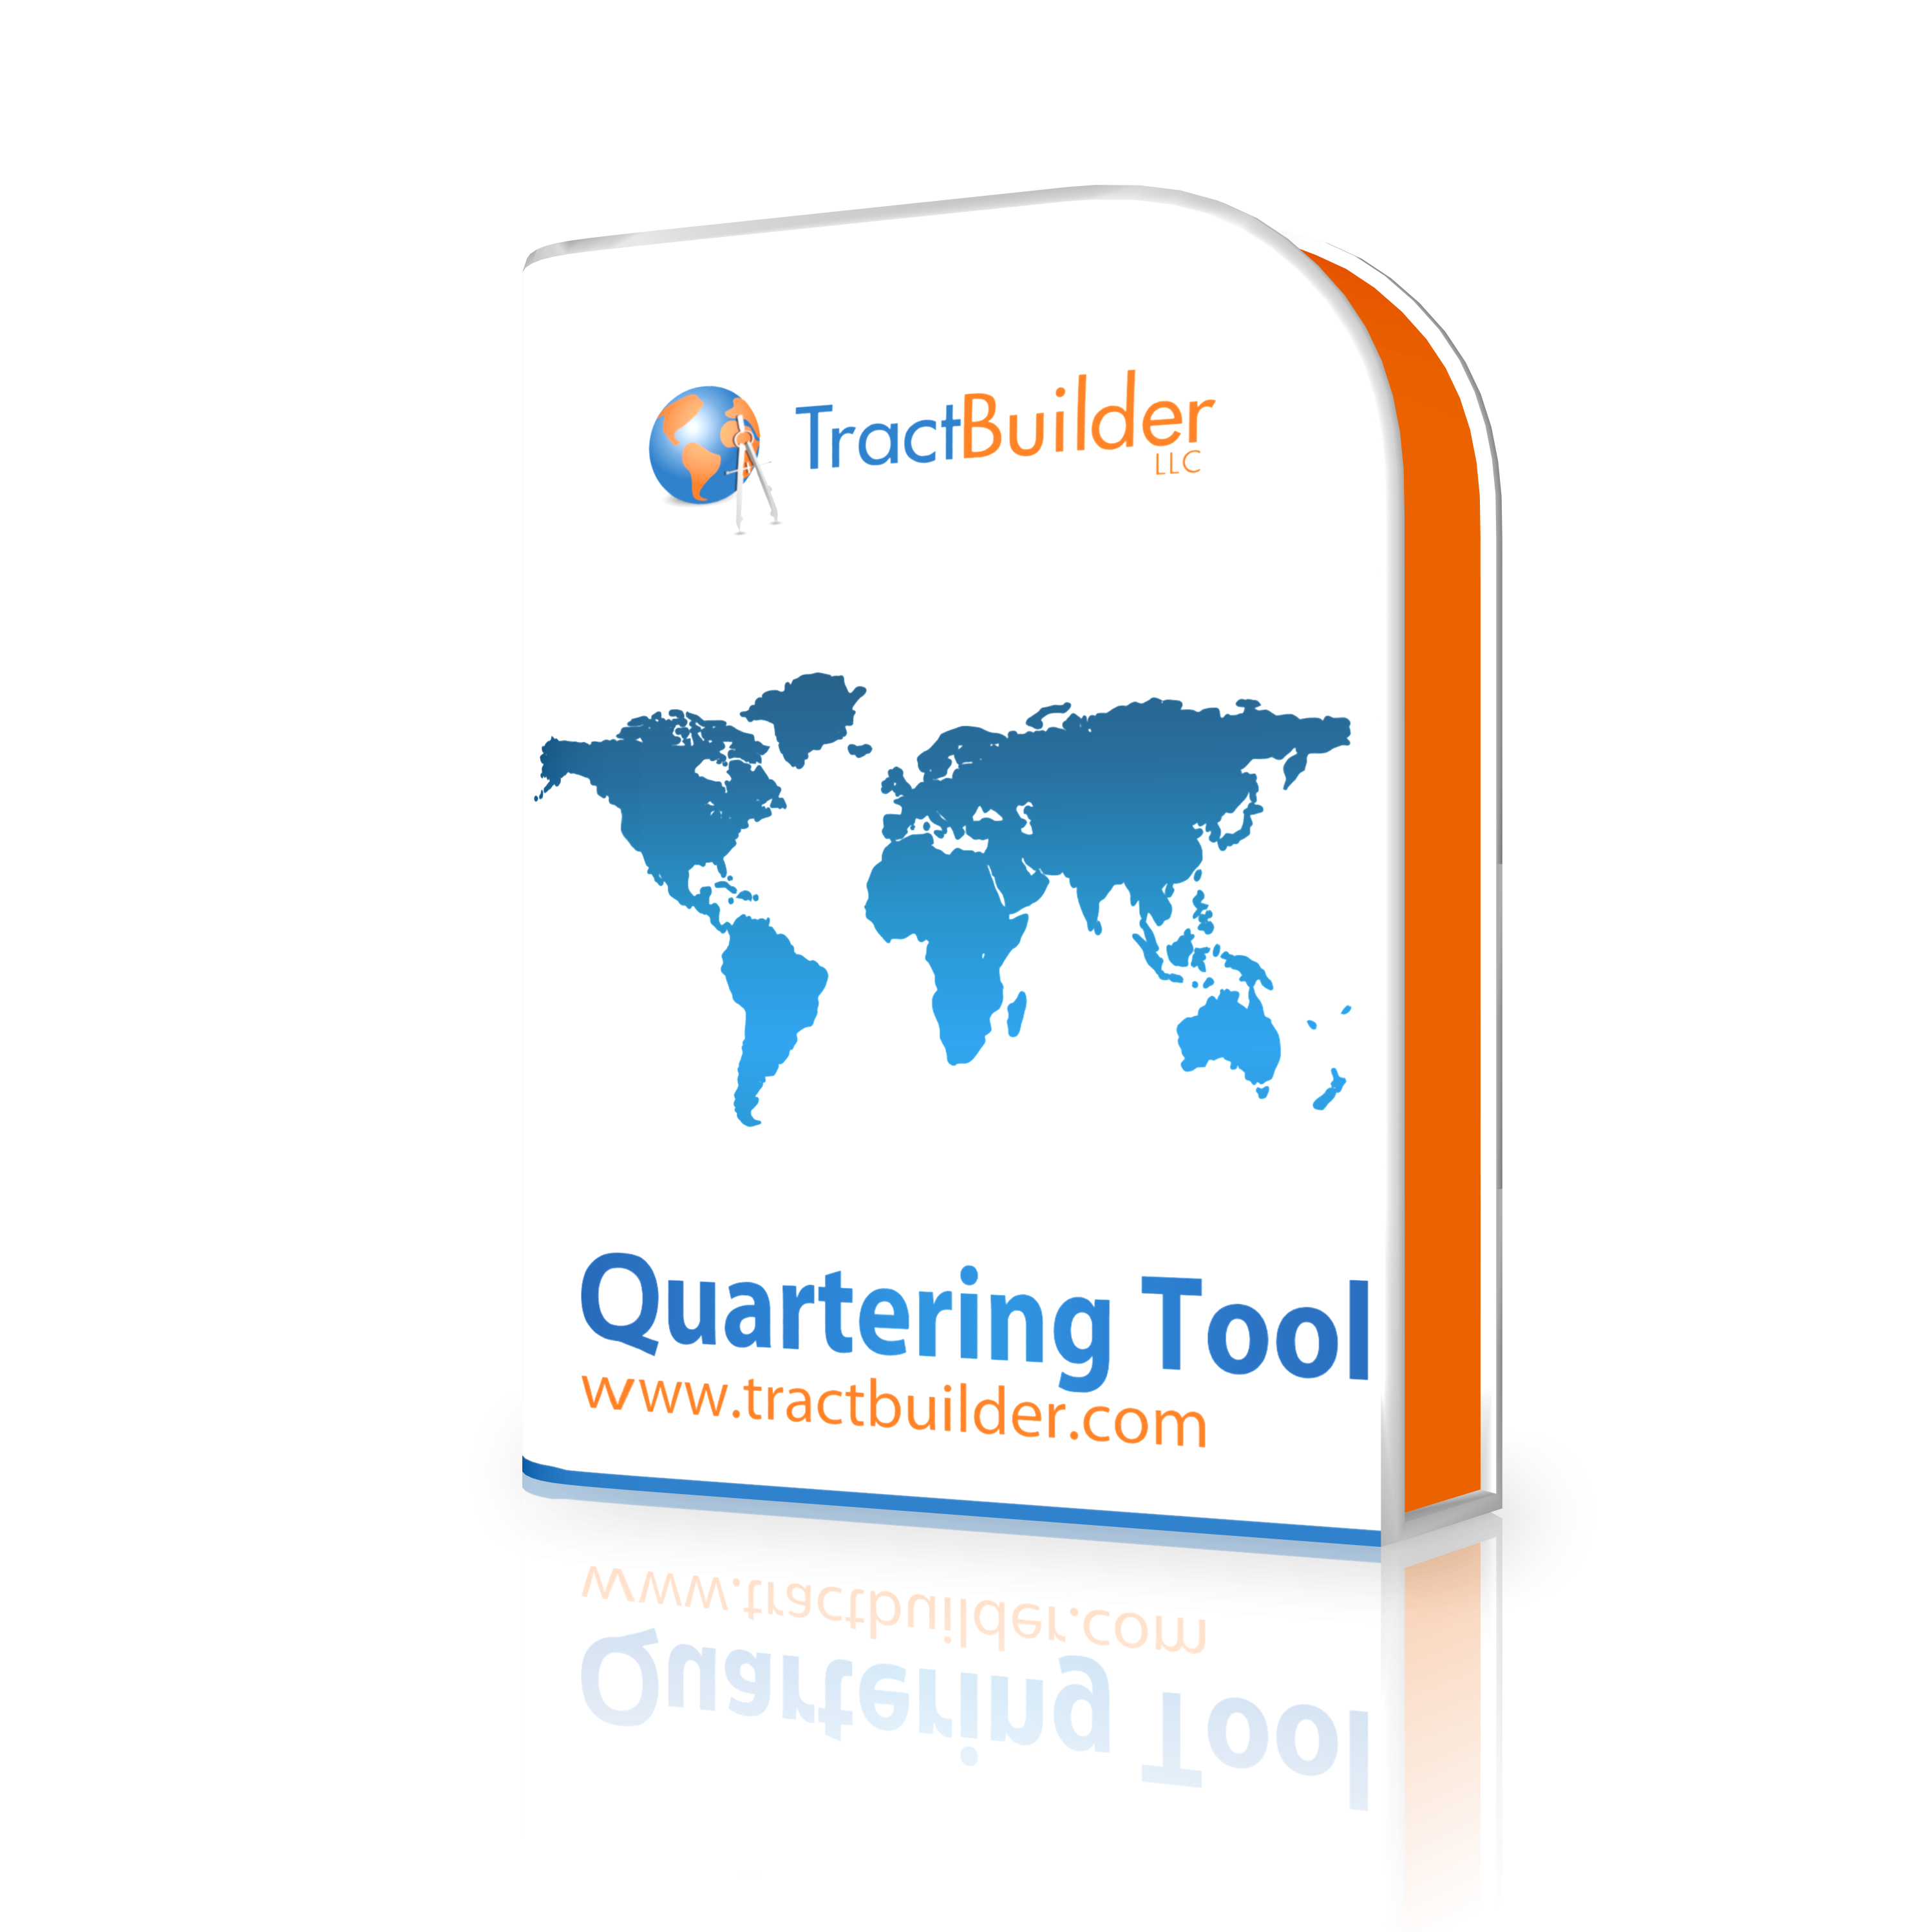 The TractBuilder Quartering Tool enables you to create GIS features based on Public Land Survey System (PLSS) aliquots. Instead of using an imaginary land grid that does not match real…